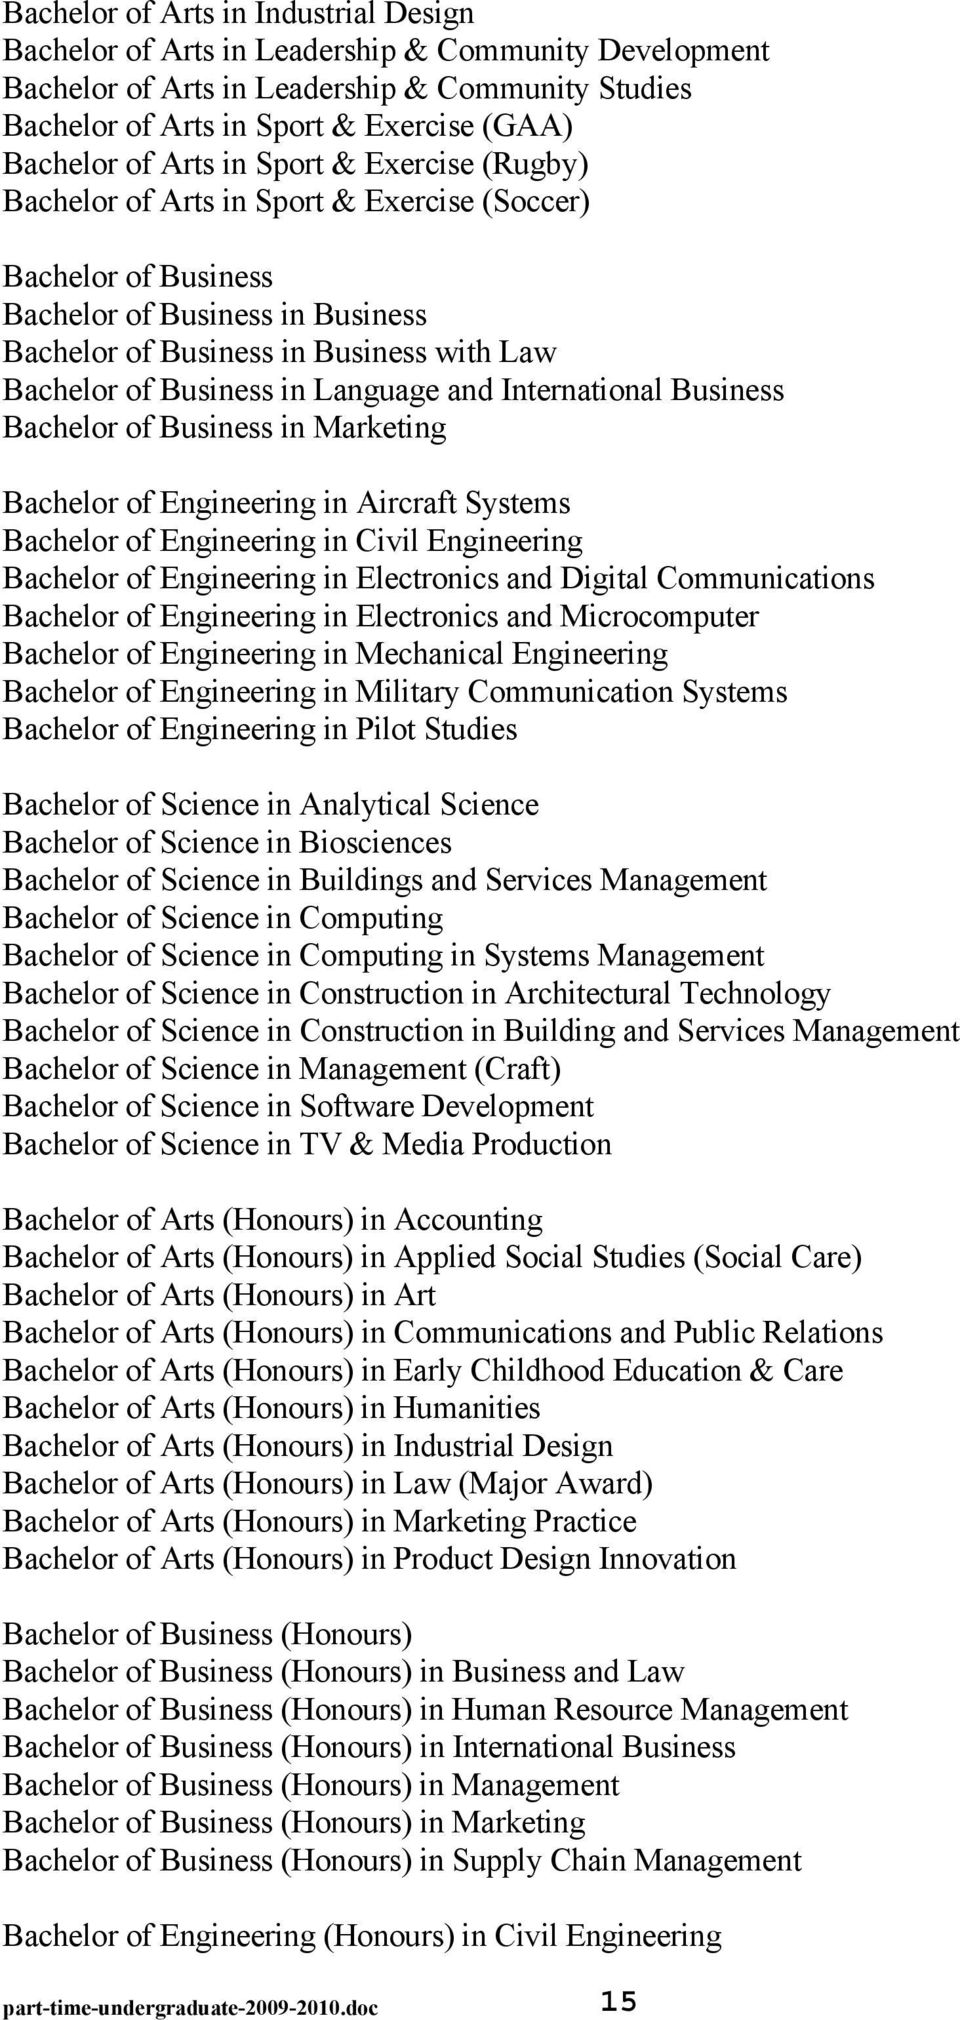 Language and International Business Bachelor of Business in Marketing Bachelor of Engineering in Aircraft Systems Bachelor of Engineering in Civil Engineering Bachelor of Engineering in Electronics